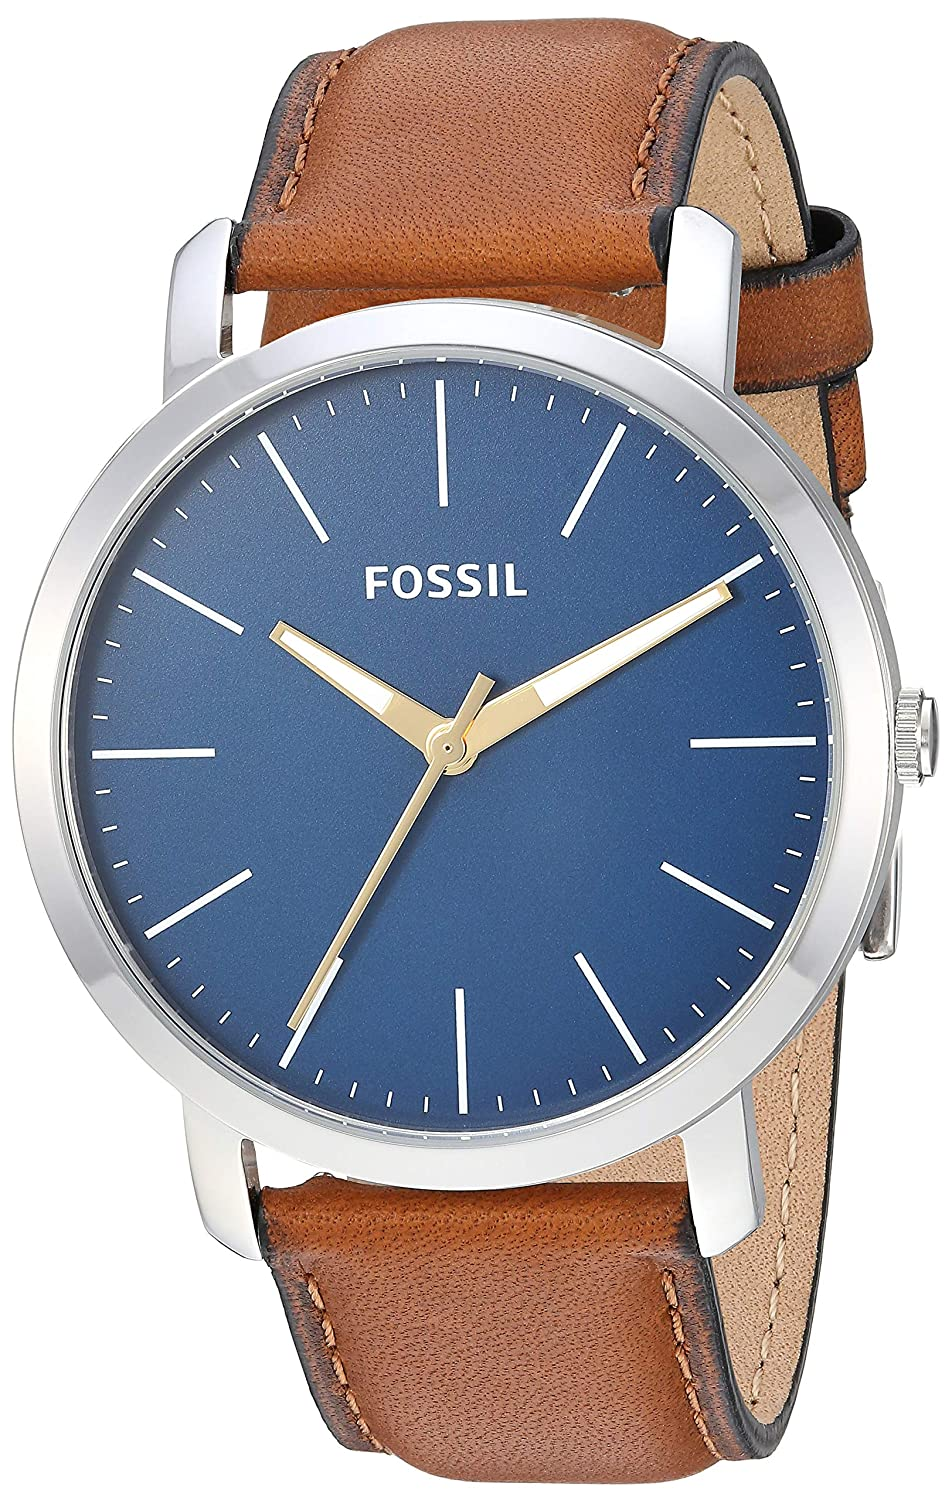 Fossil Analog Blue Dia Best Mens Watches Under 5000 in India to buy in 2019 - Reviews & Buyers Guide